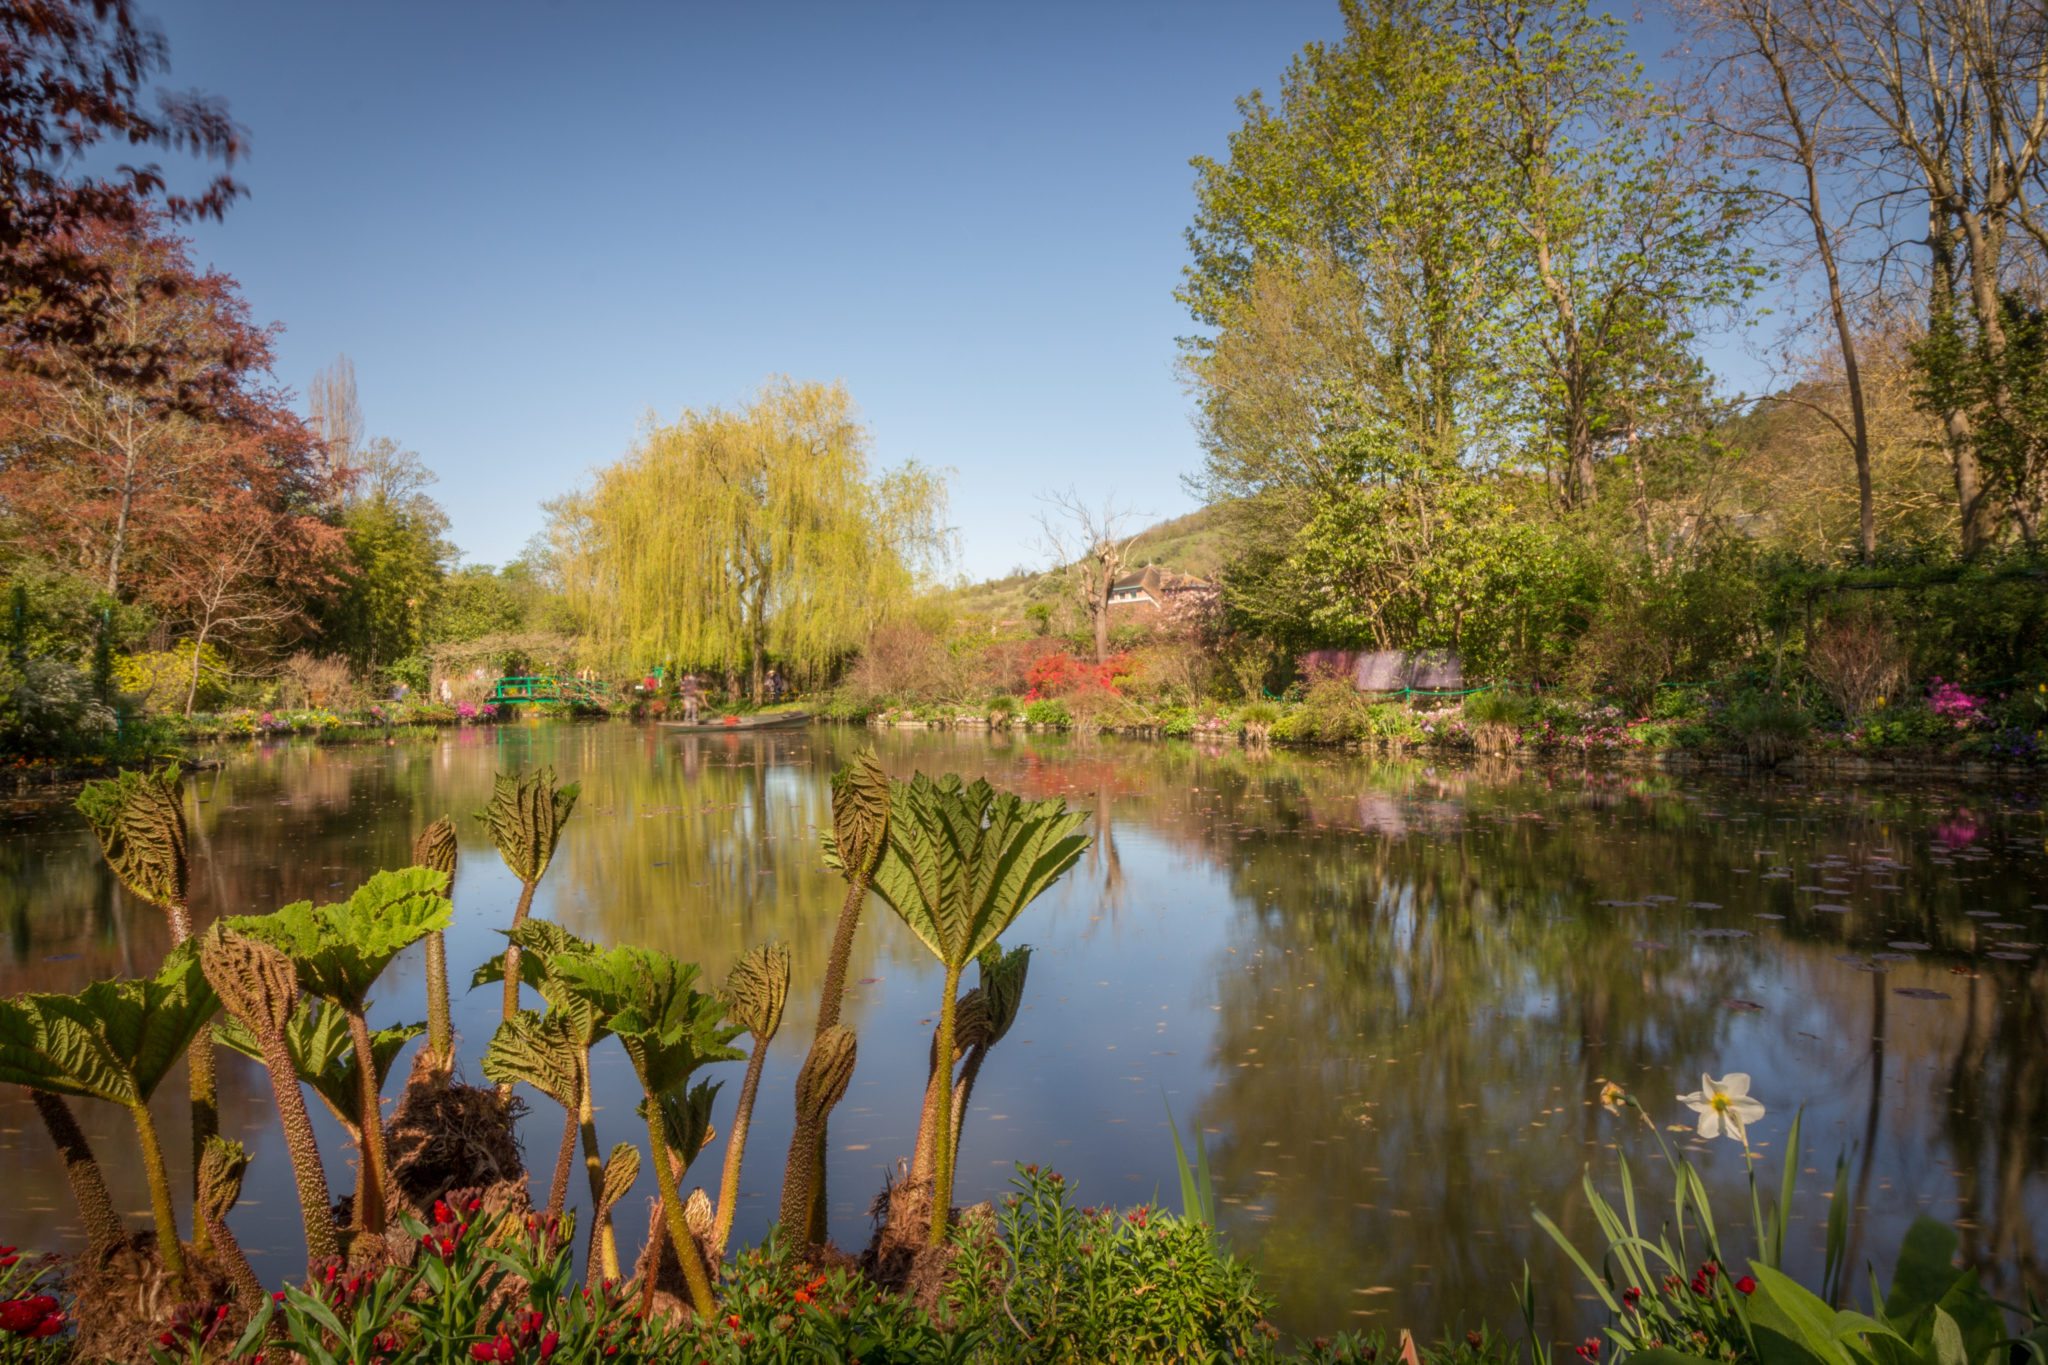 Photo of a lake at Giverny - Monet's house